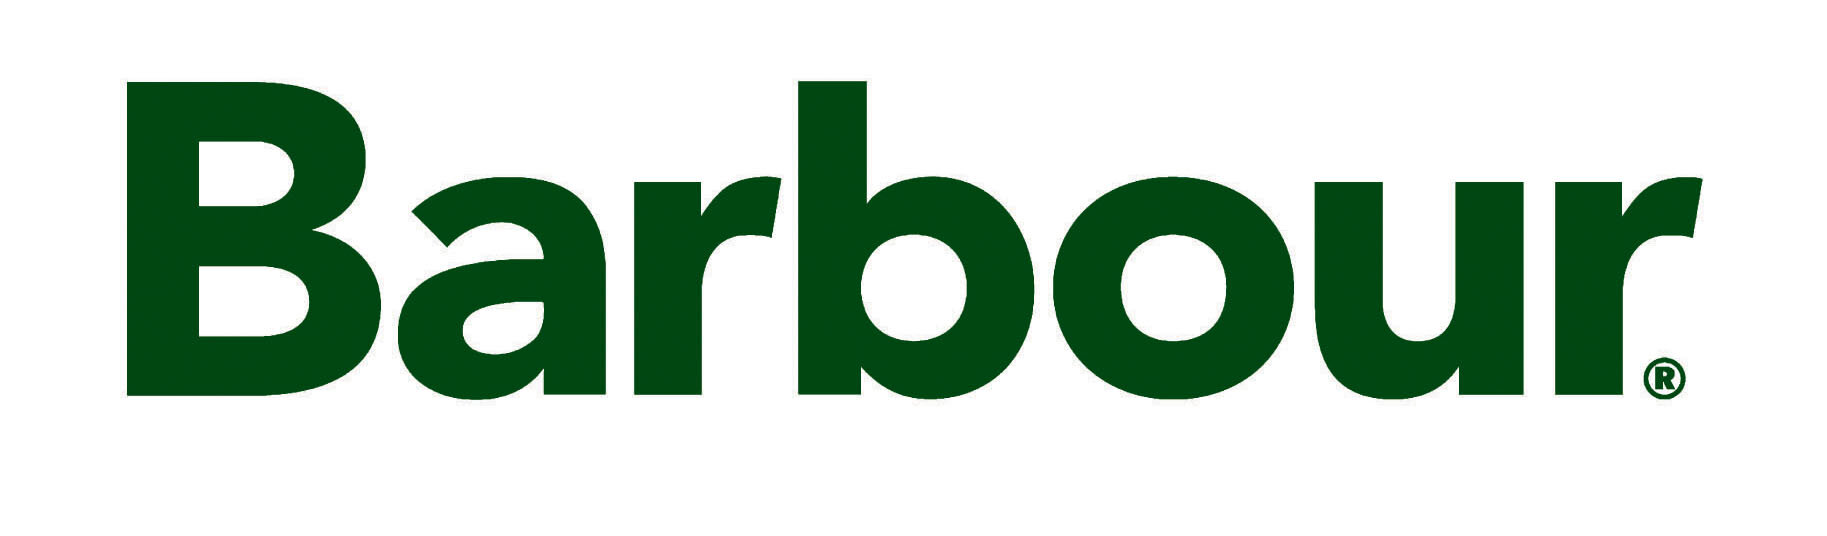 barbour-logo.jpg